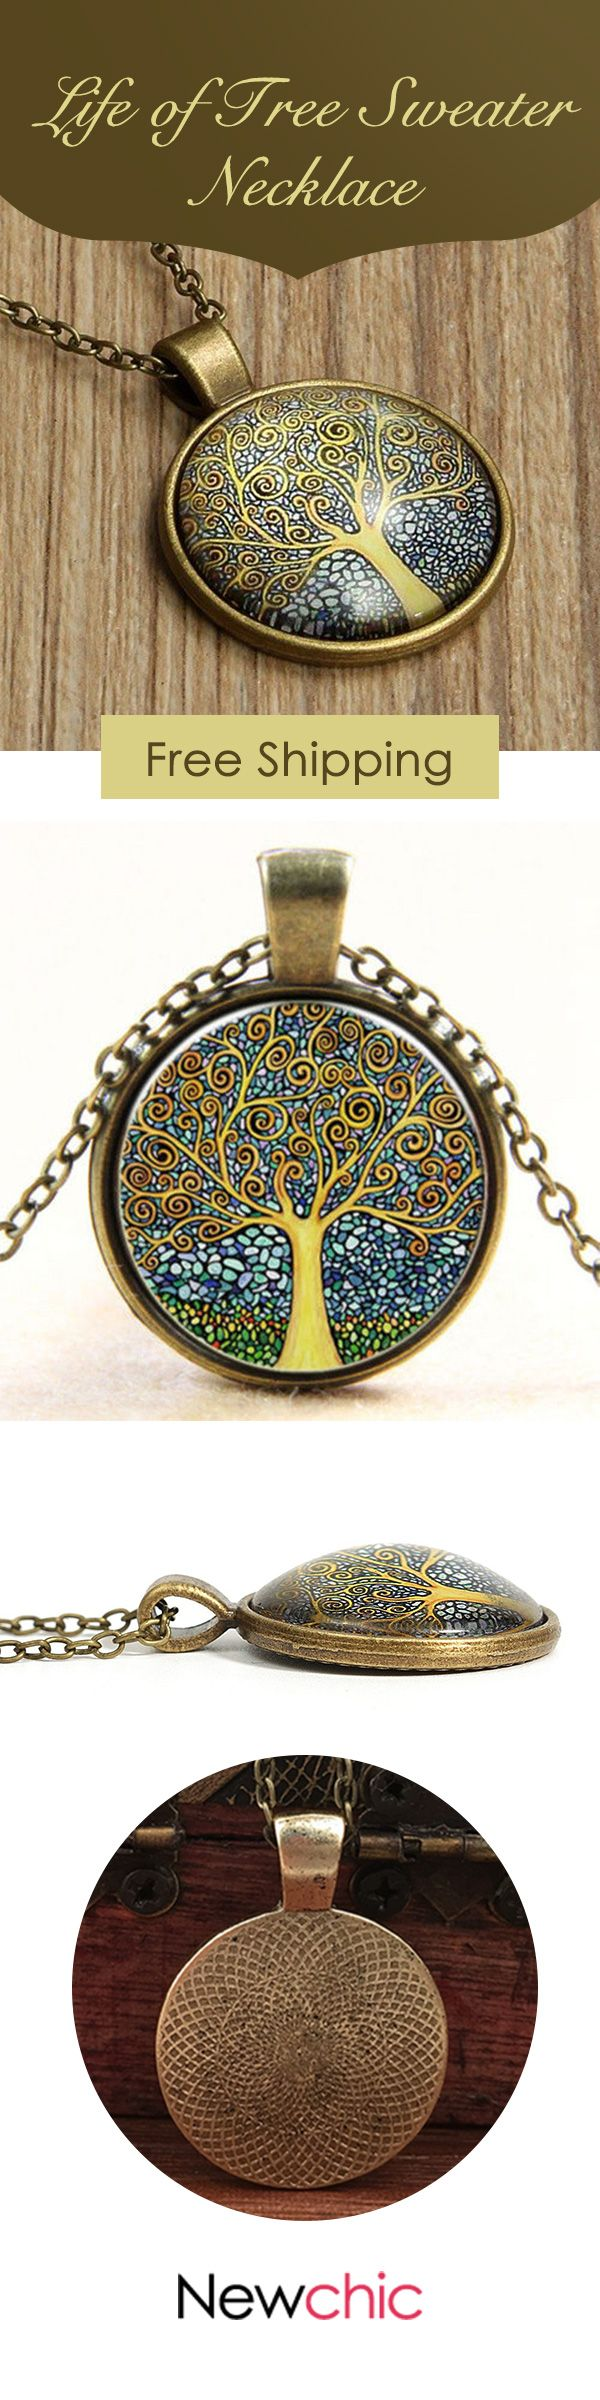 [Newchic Online Shopping] 46%OFF Life of Tree Sweater Necklace